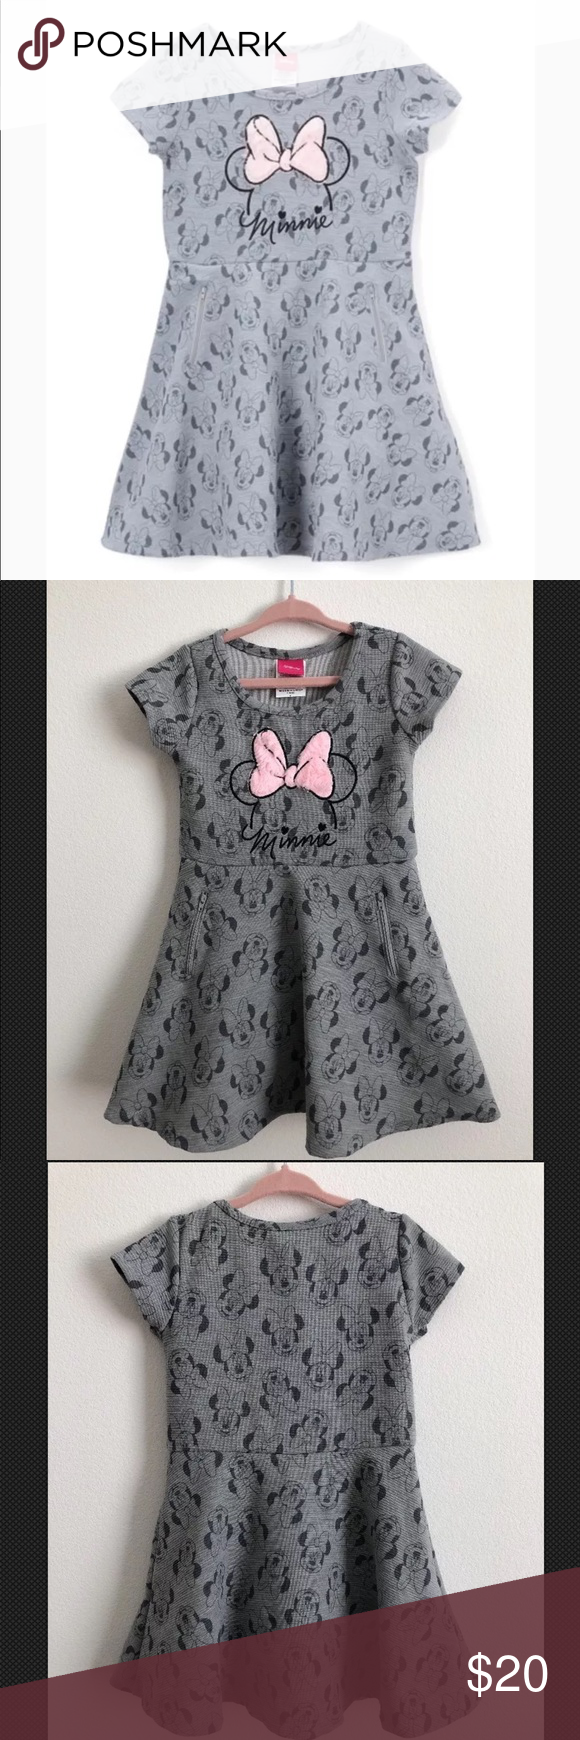 Minnie mouse gray pink silhouette dress size t